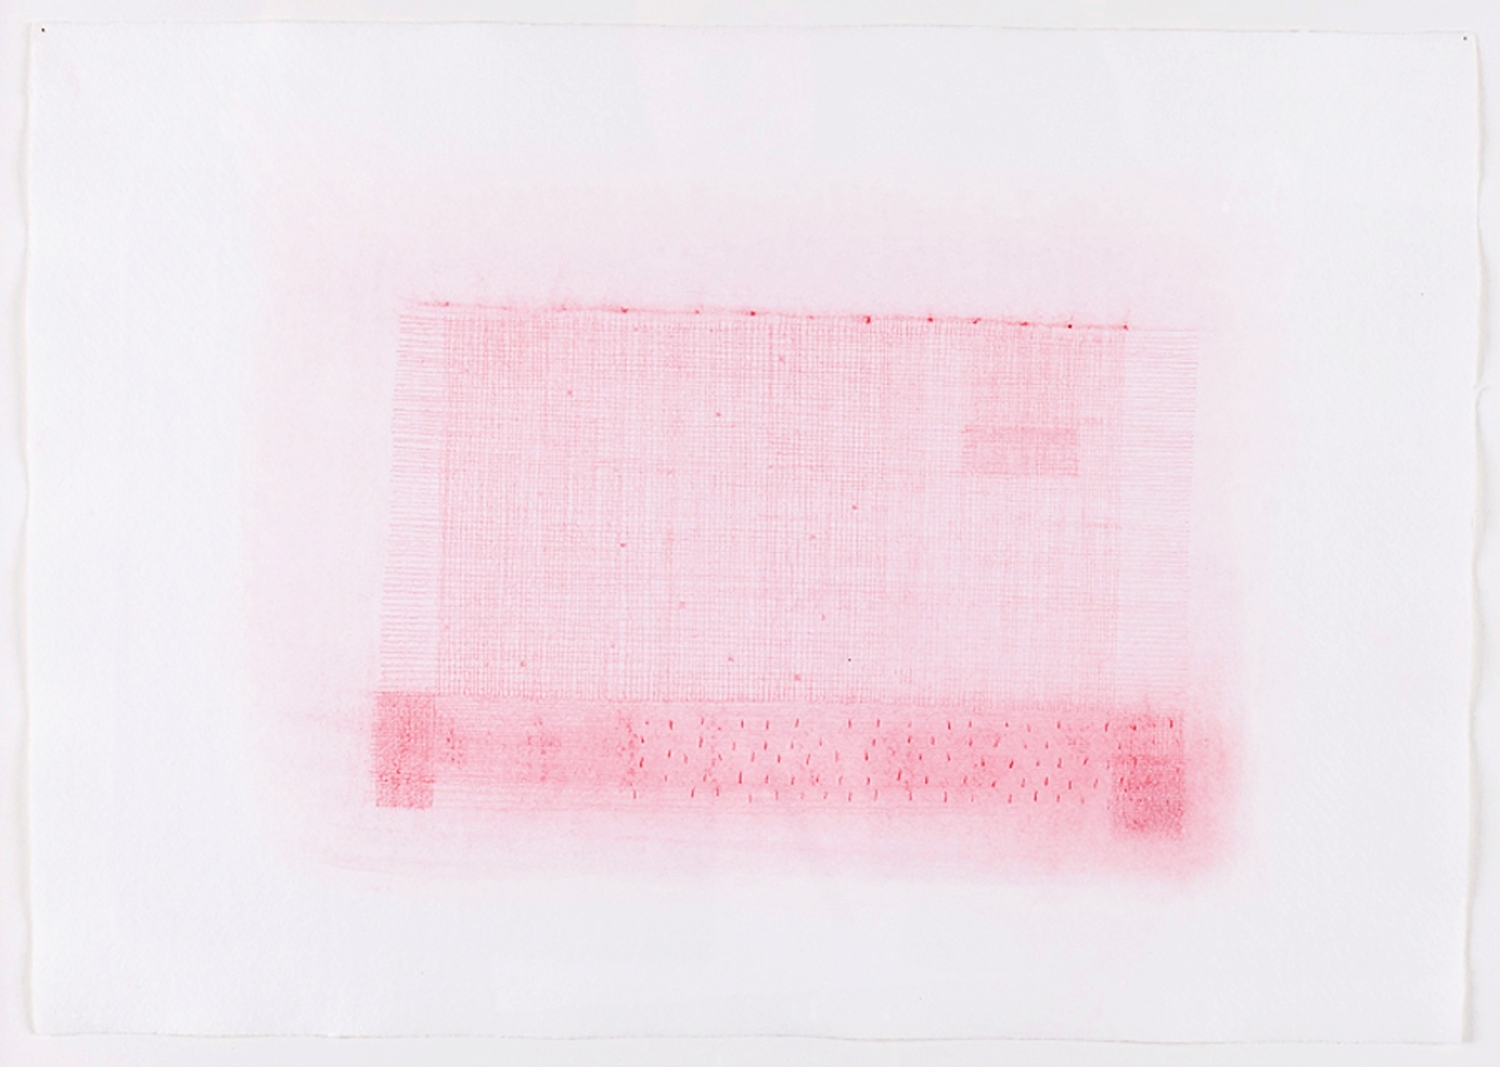 """Drawn Weaving in Red. 2010. Color Pencil. 18"""" x 22"""""""